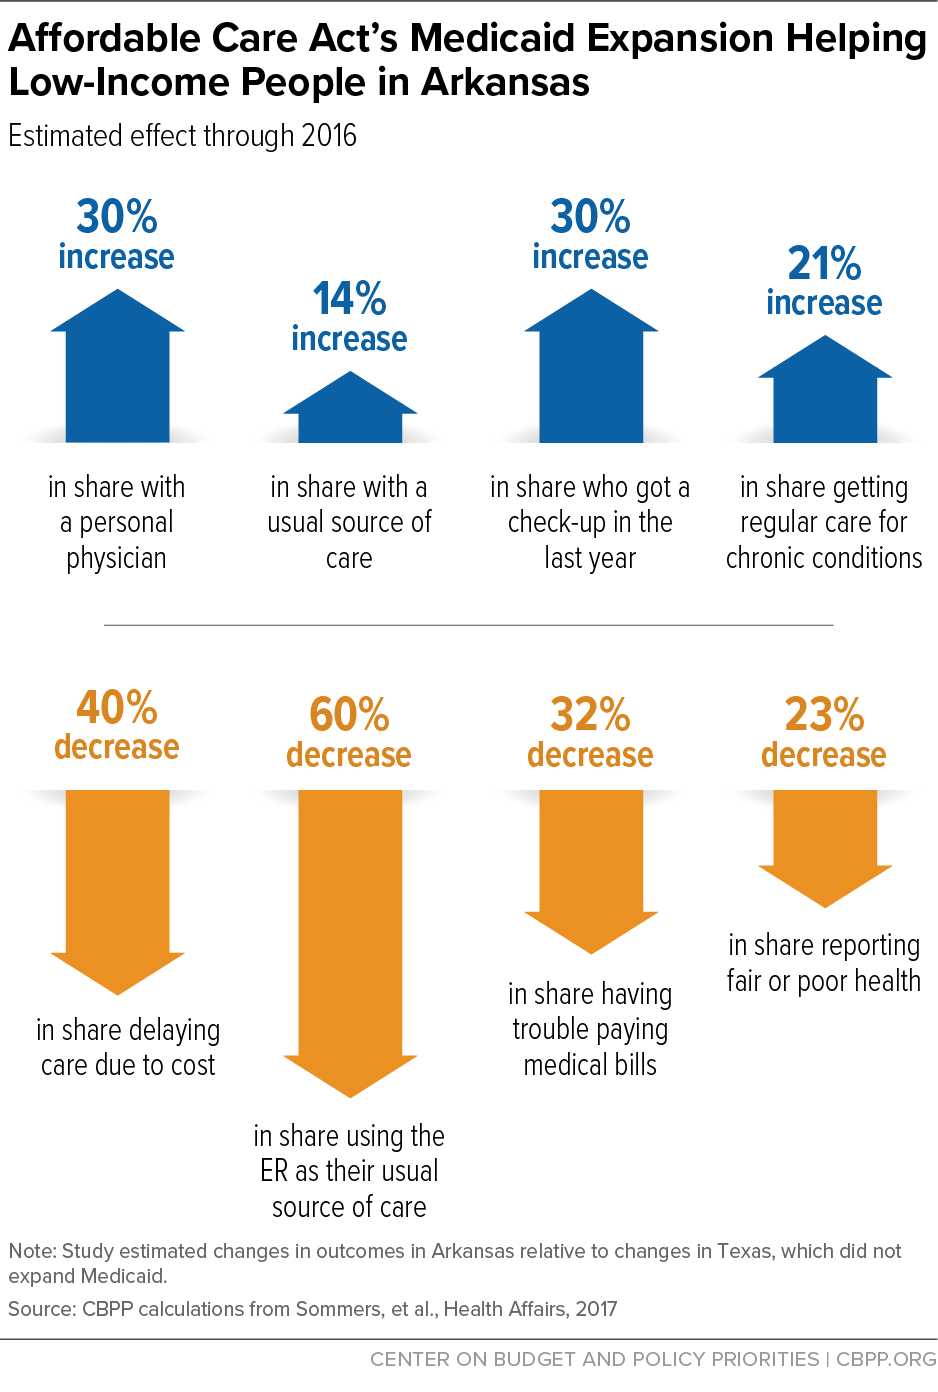 Affordable Care Act's Medicaid Expansion Helping Low-Income People in Arkansas